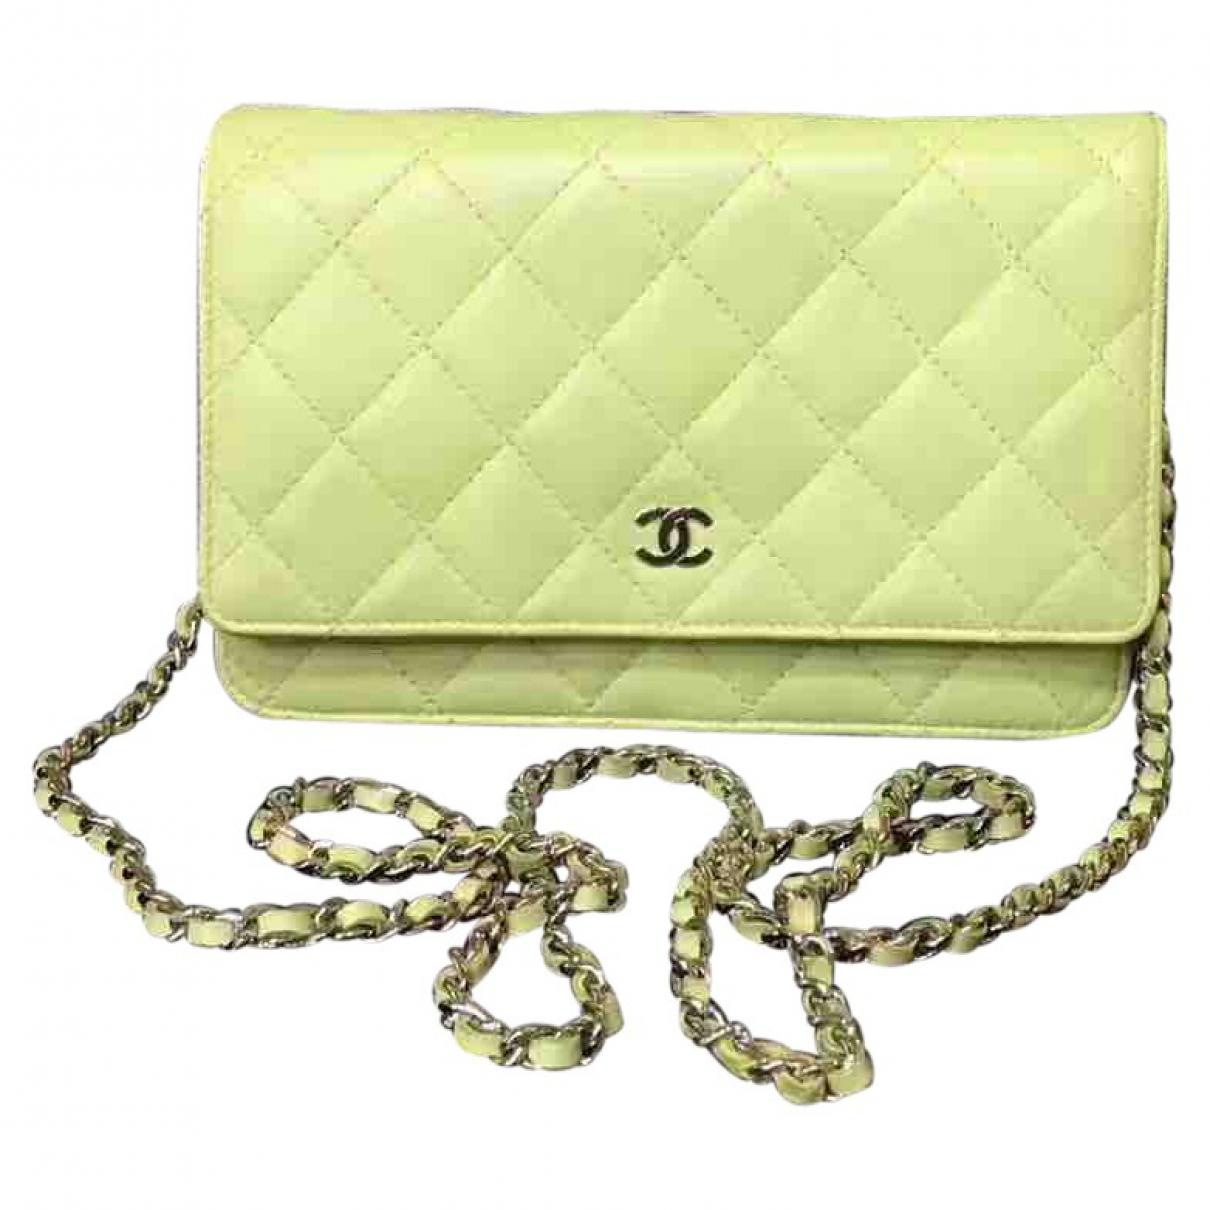 4822a7eeb227dc Lyst - Chanel Pre-owned Wallet On Chain Leather Crossbody Bag in Green